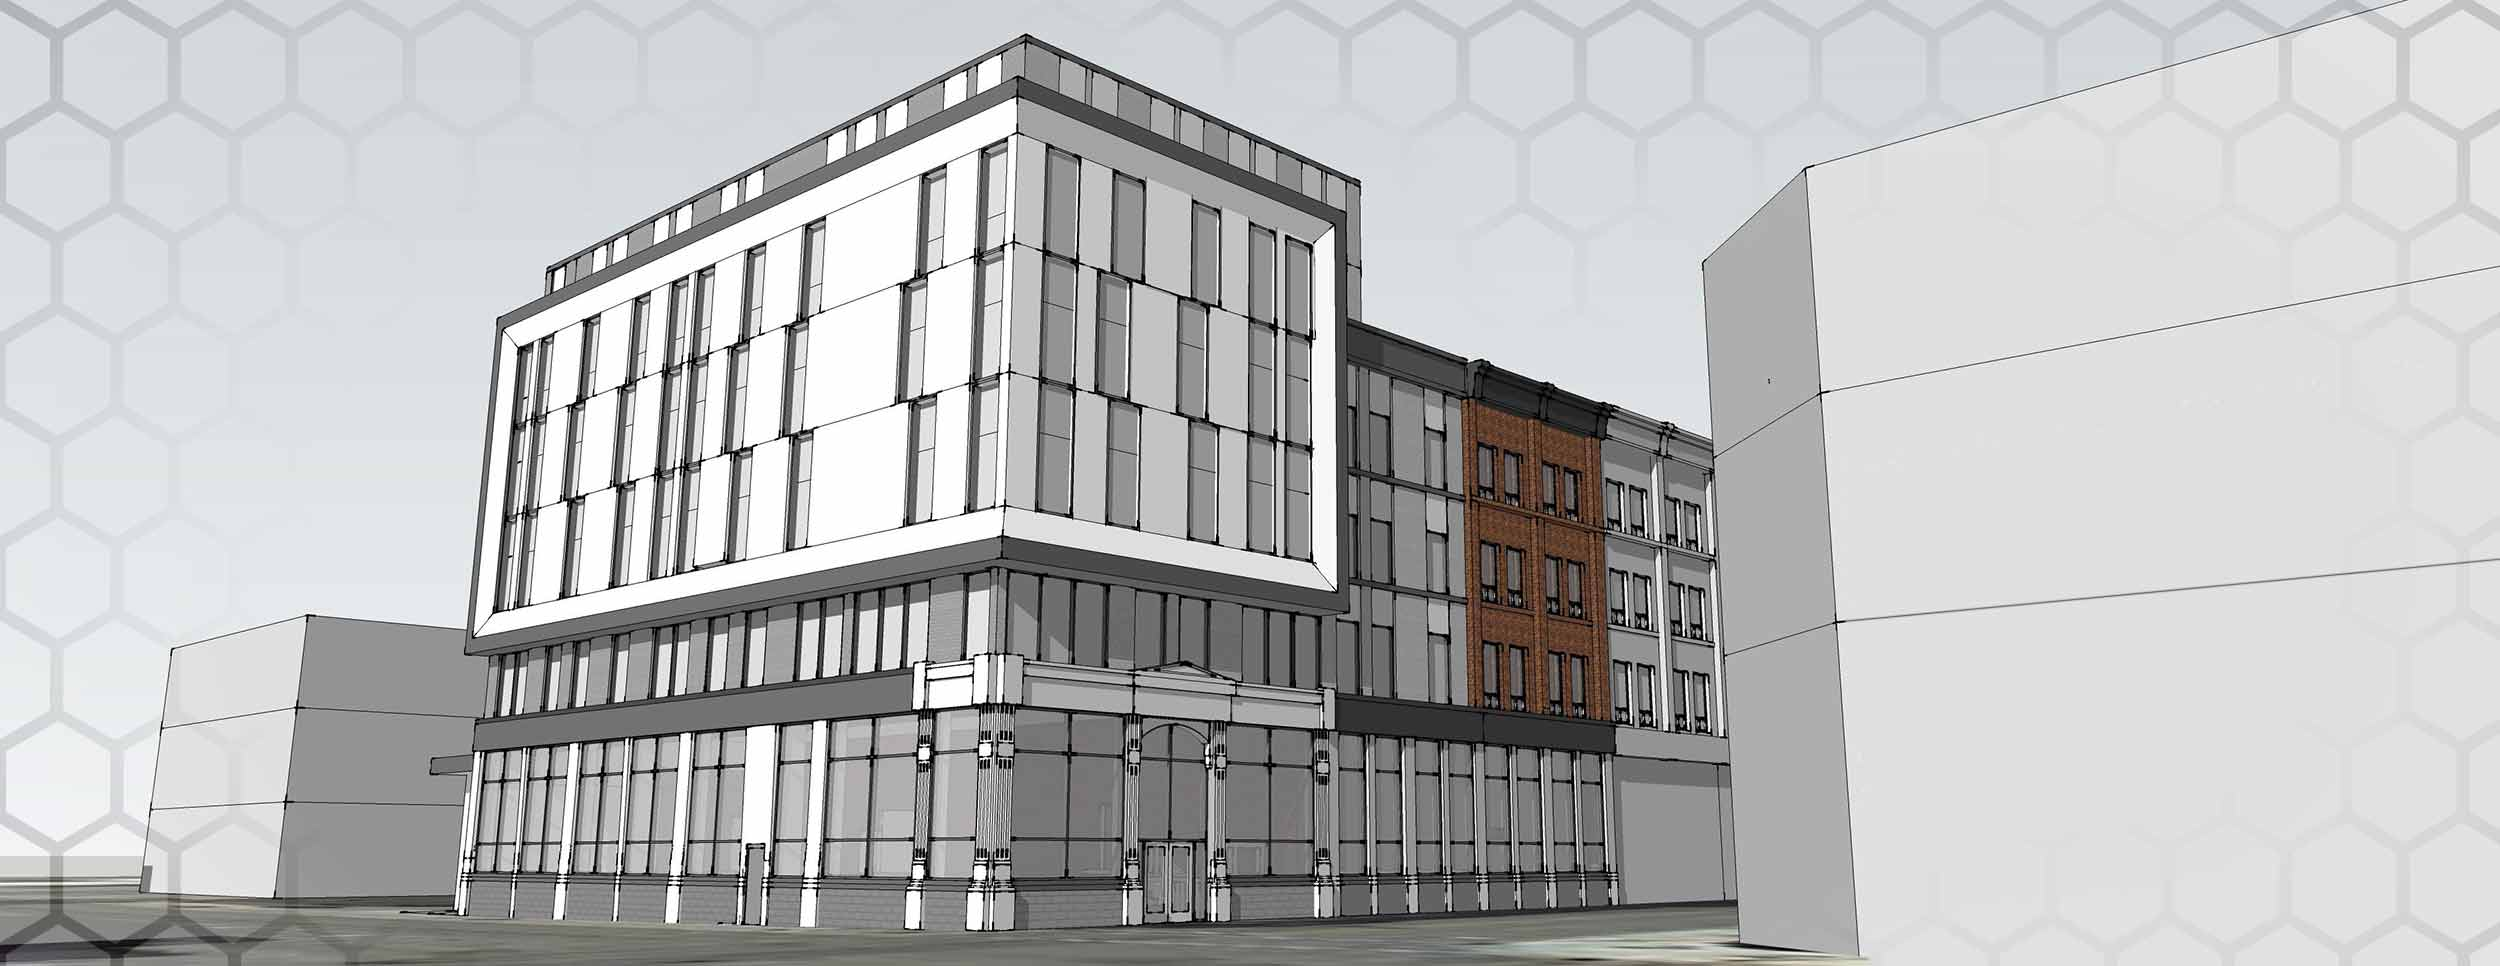 Exterior Rendering of a Heritage Building for Youth Opportunities Unlimitd. It is a multistorey building with grey and red stone exterior.